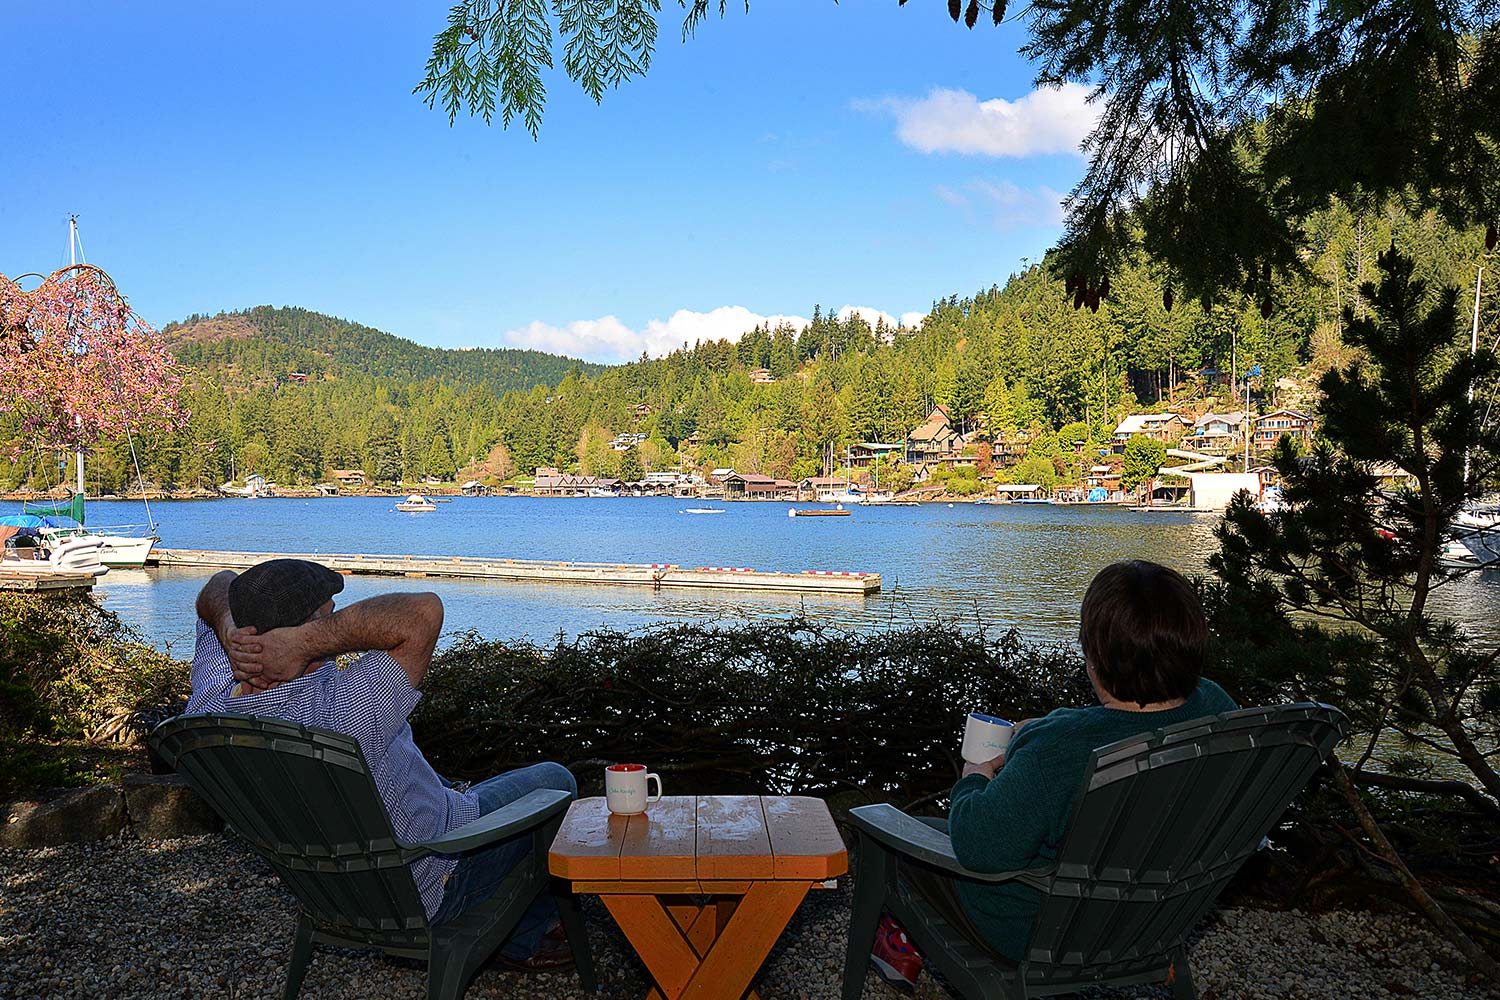 Two guests sit and enjoy a cup of coffee and a scenic view of the Pender Harbour at a waterfront cottage for rent.